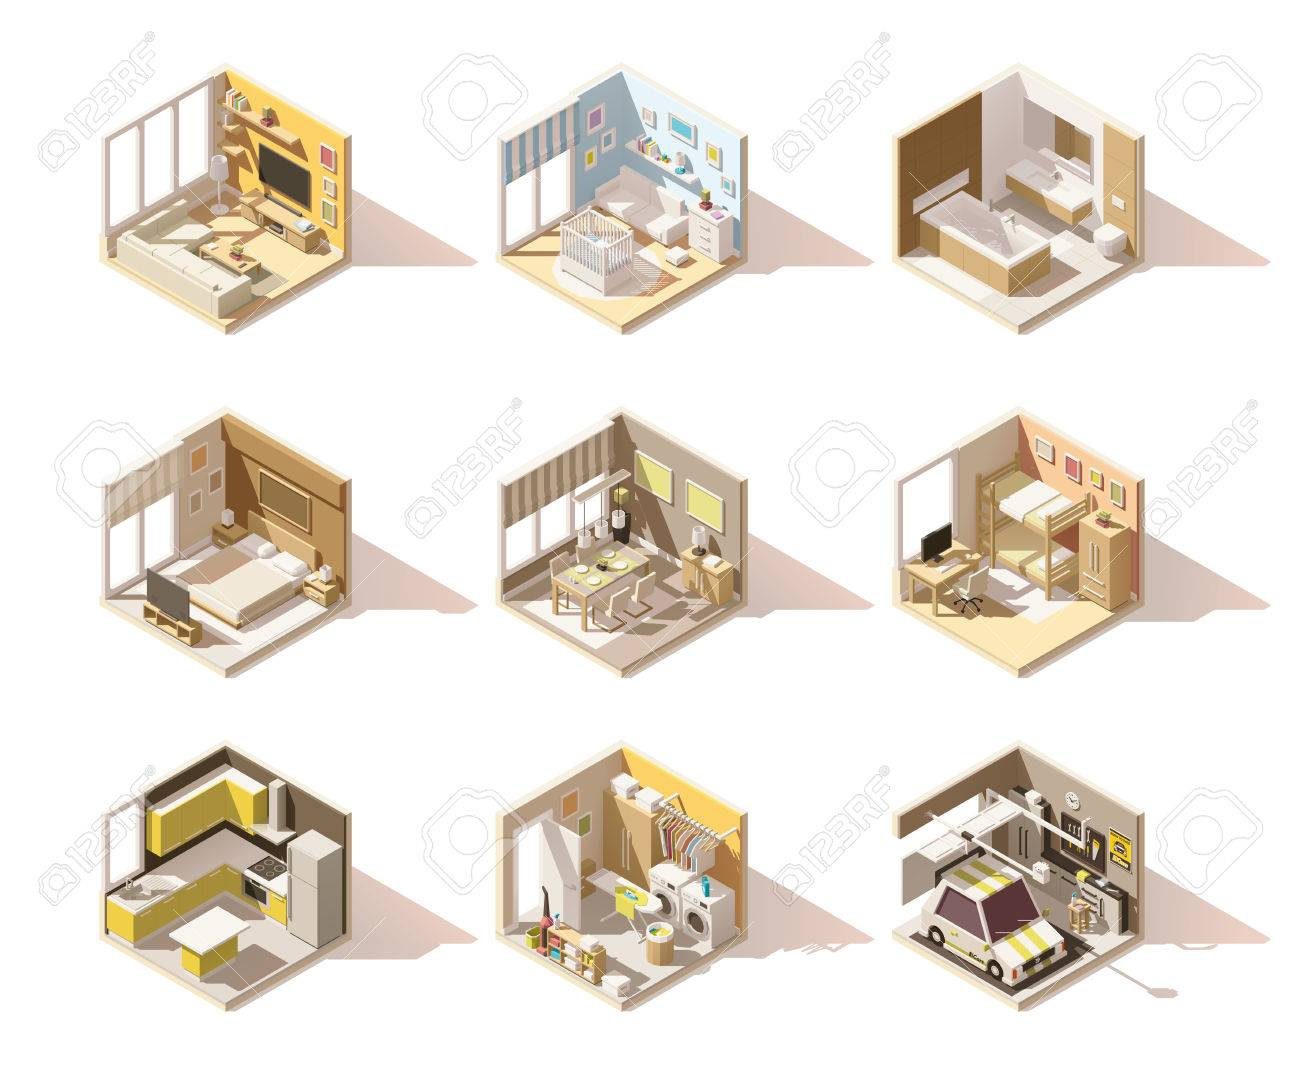 Vector isometric low poly home rooms set - 71588444